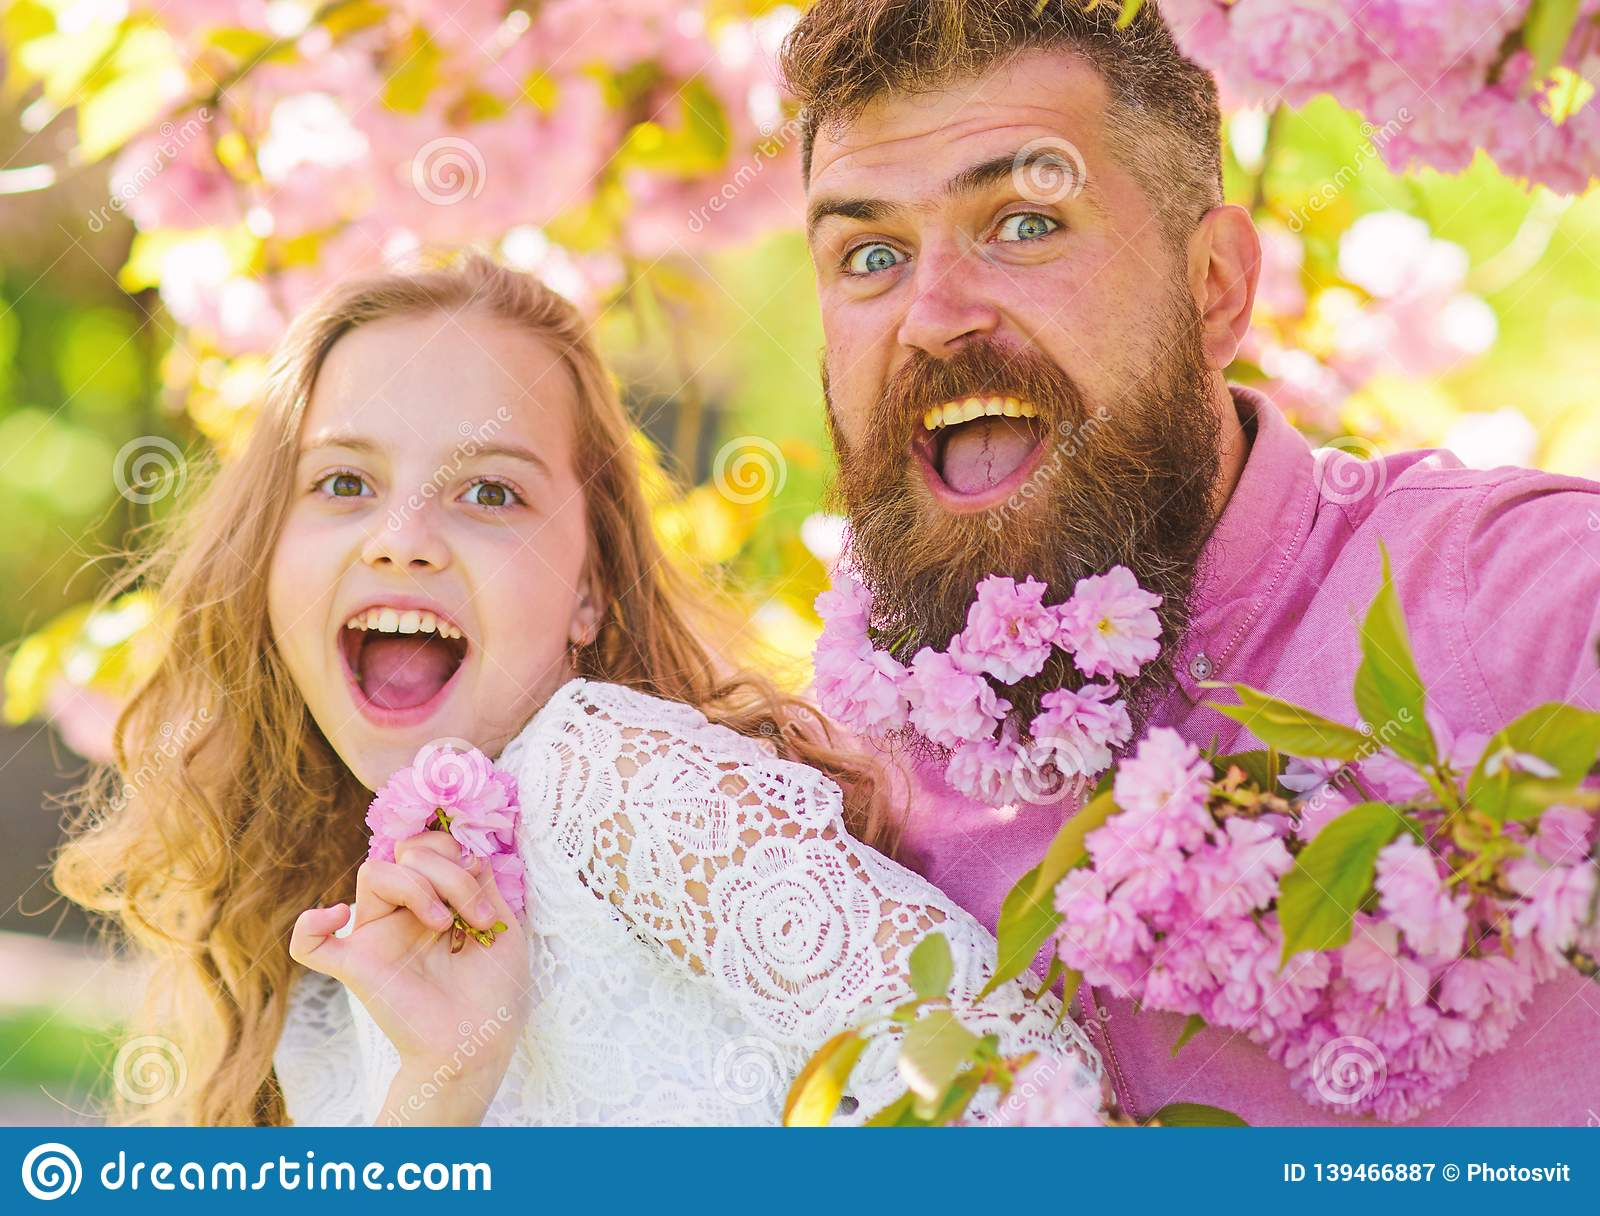 Girl with dad near sakura flowers on spring day. Father and daughter on happy faces play with flowers and hugs, sakura